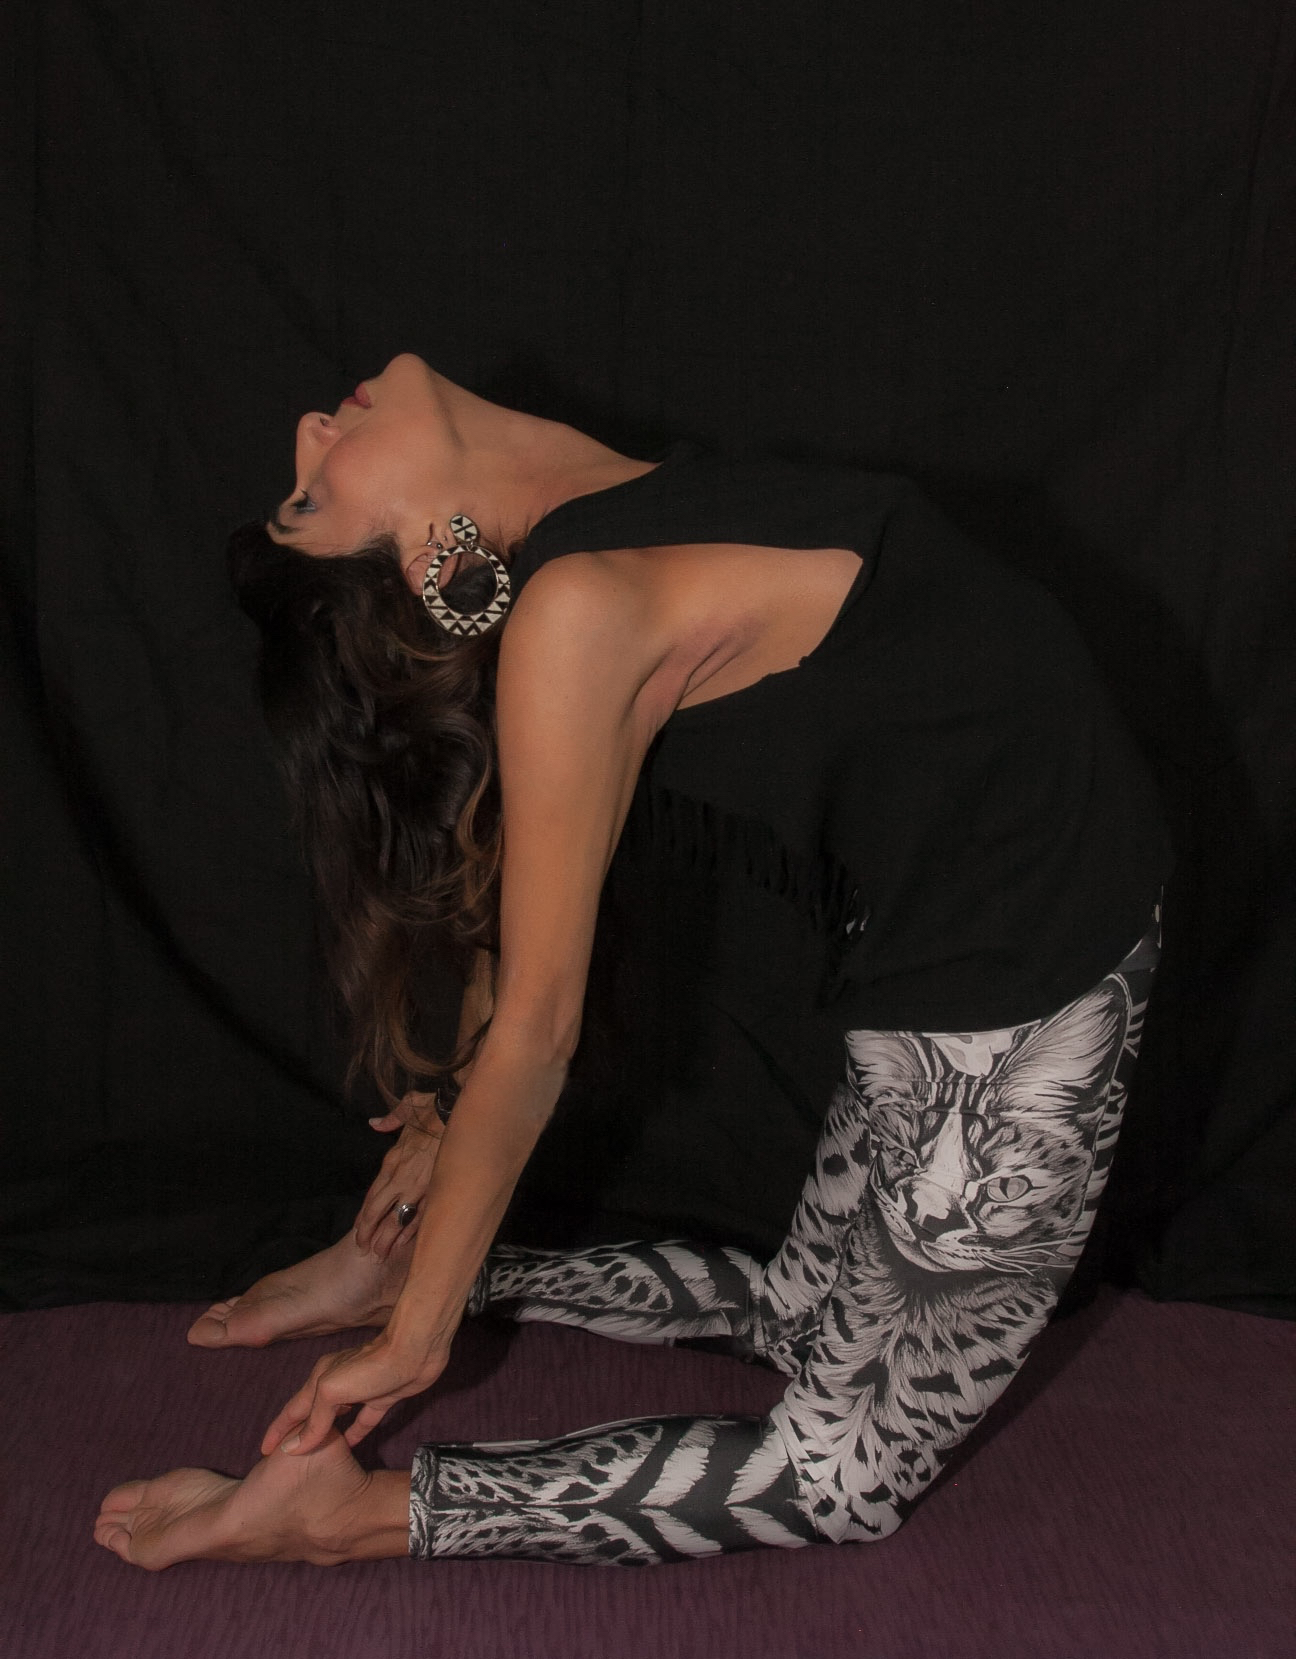 Yoga Leggings - These leggings are great for doing yoga and then hitting the town. They have a higher waist than the regular leggings and are a bit thicker. They have a high spandex content which offers an element of compression.*Ethically made in Canada with Eco-Poly Fiber!